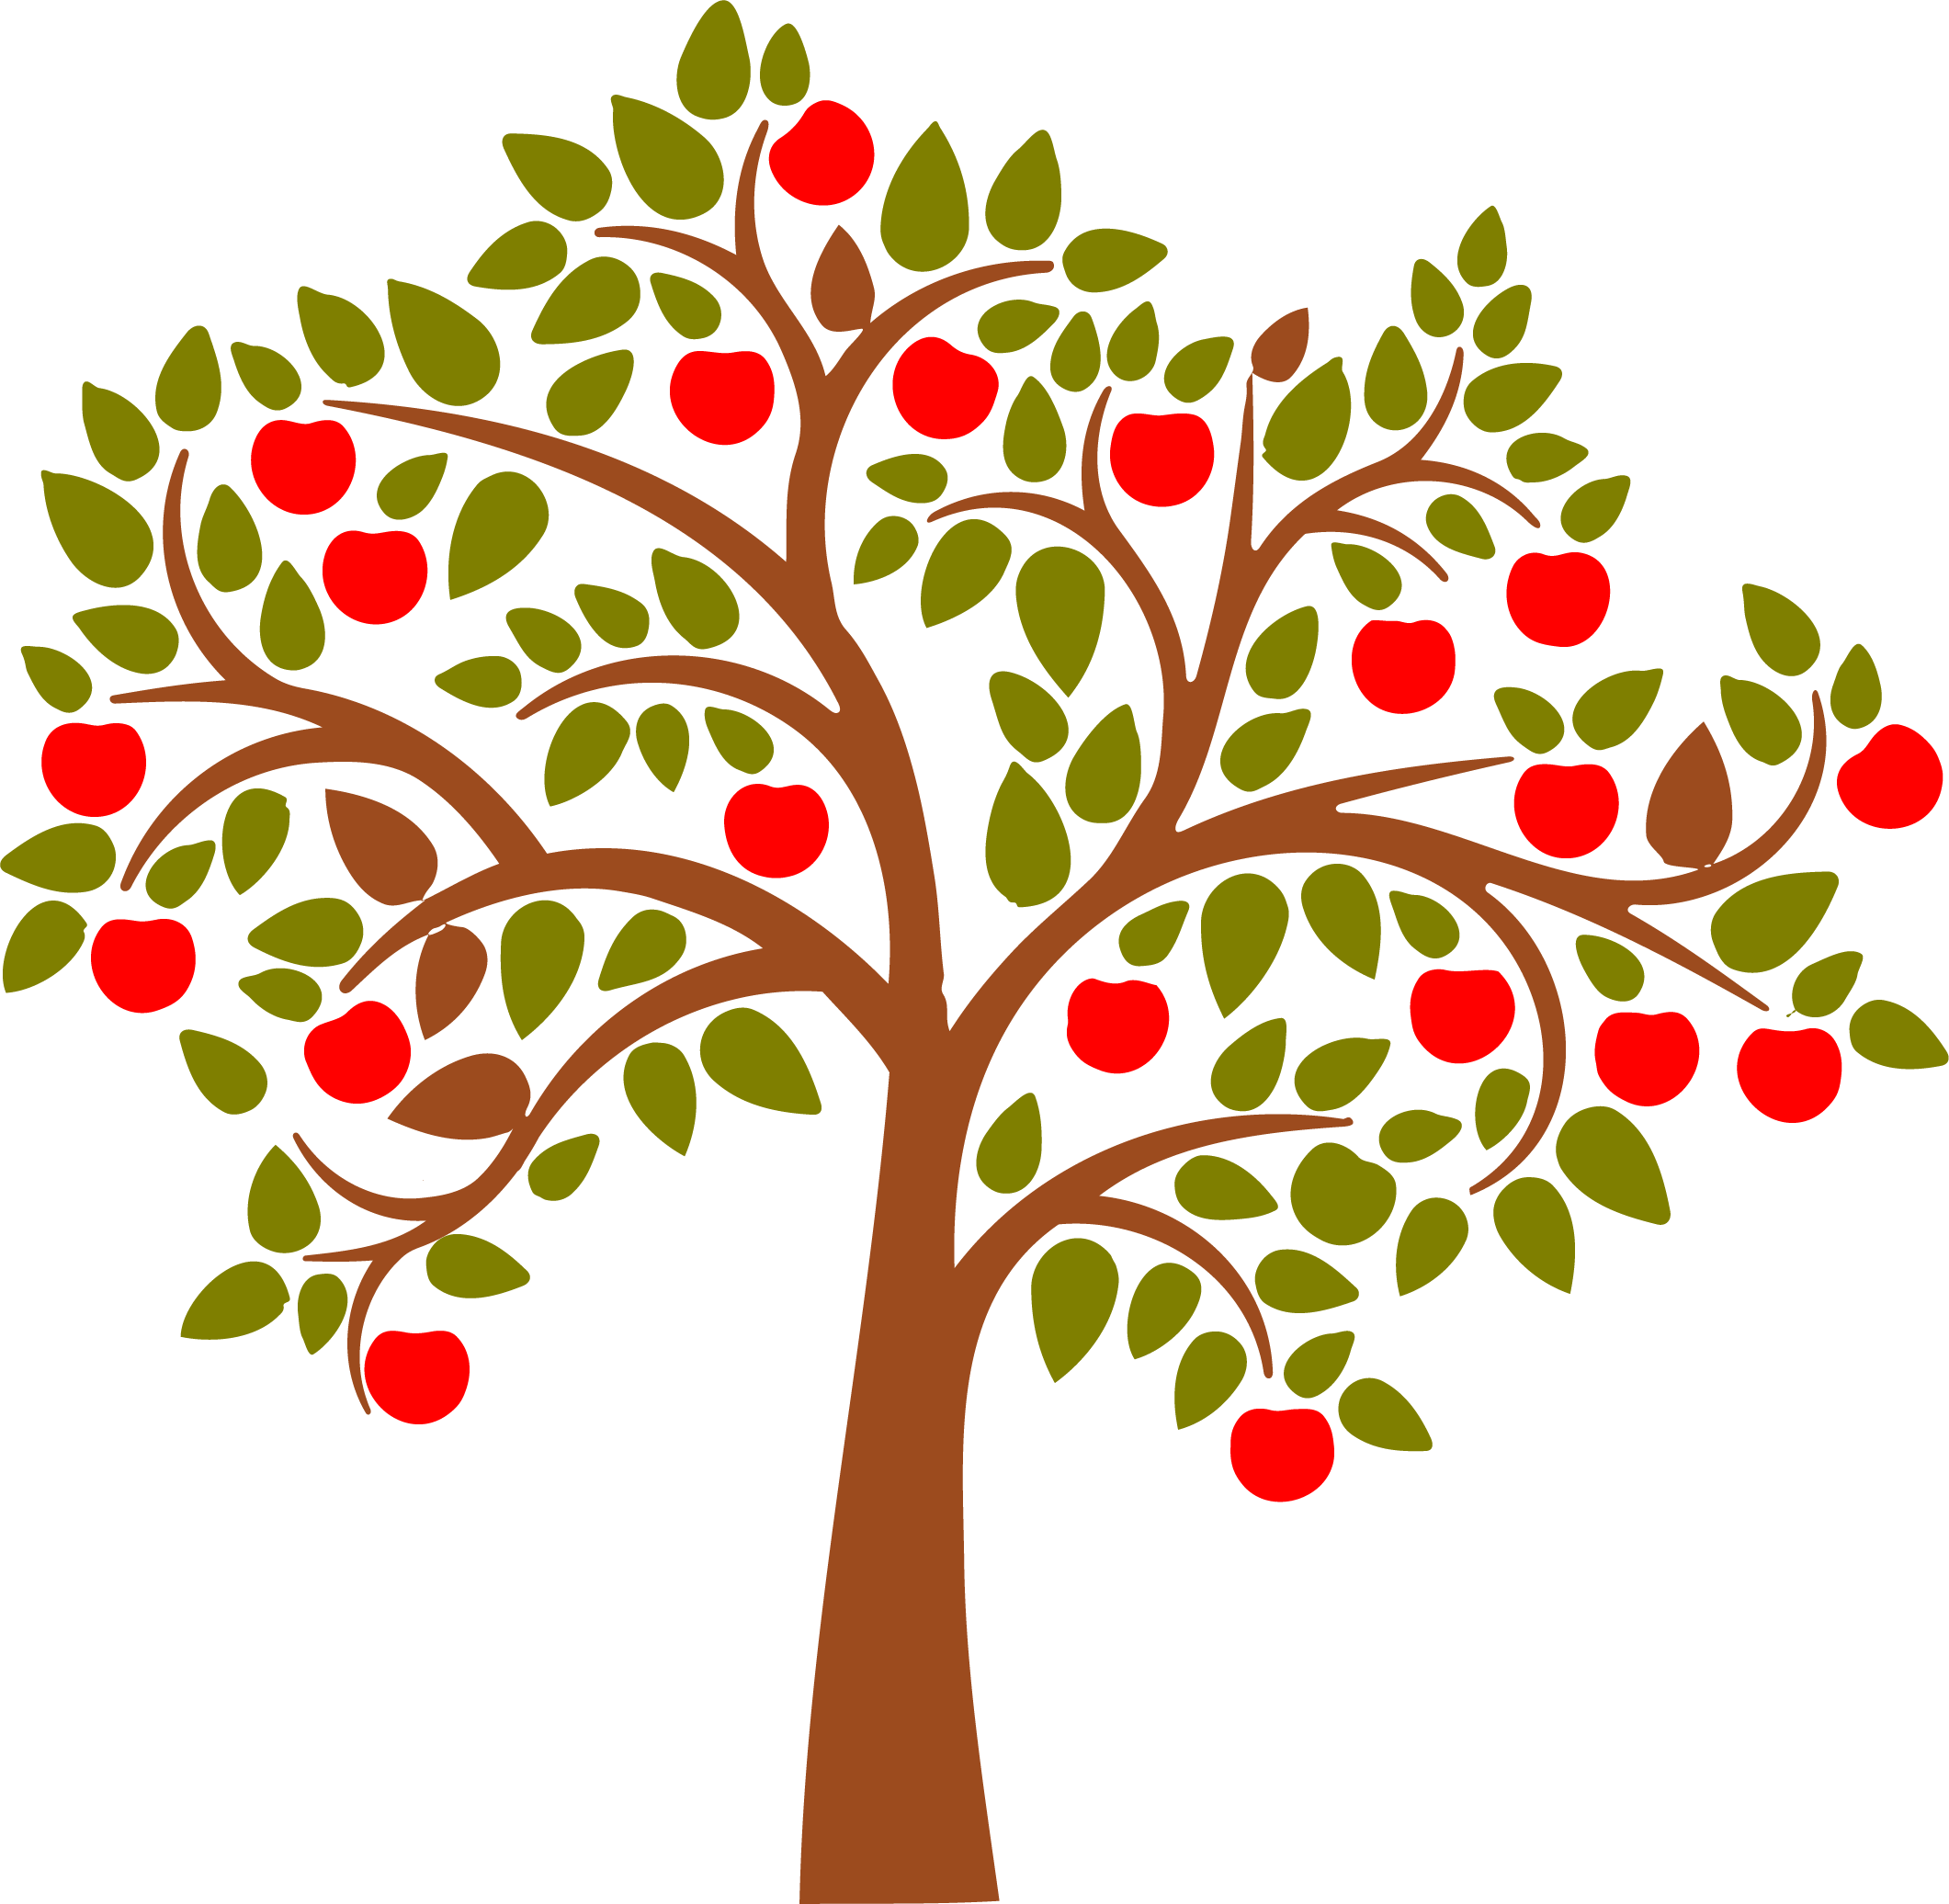 Roots clipart apple tree. Isolated with leaves